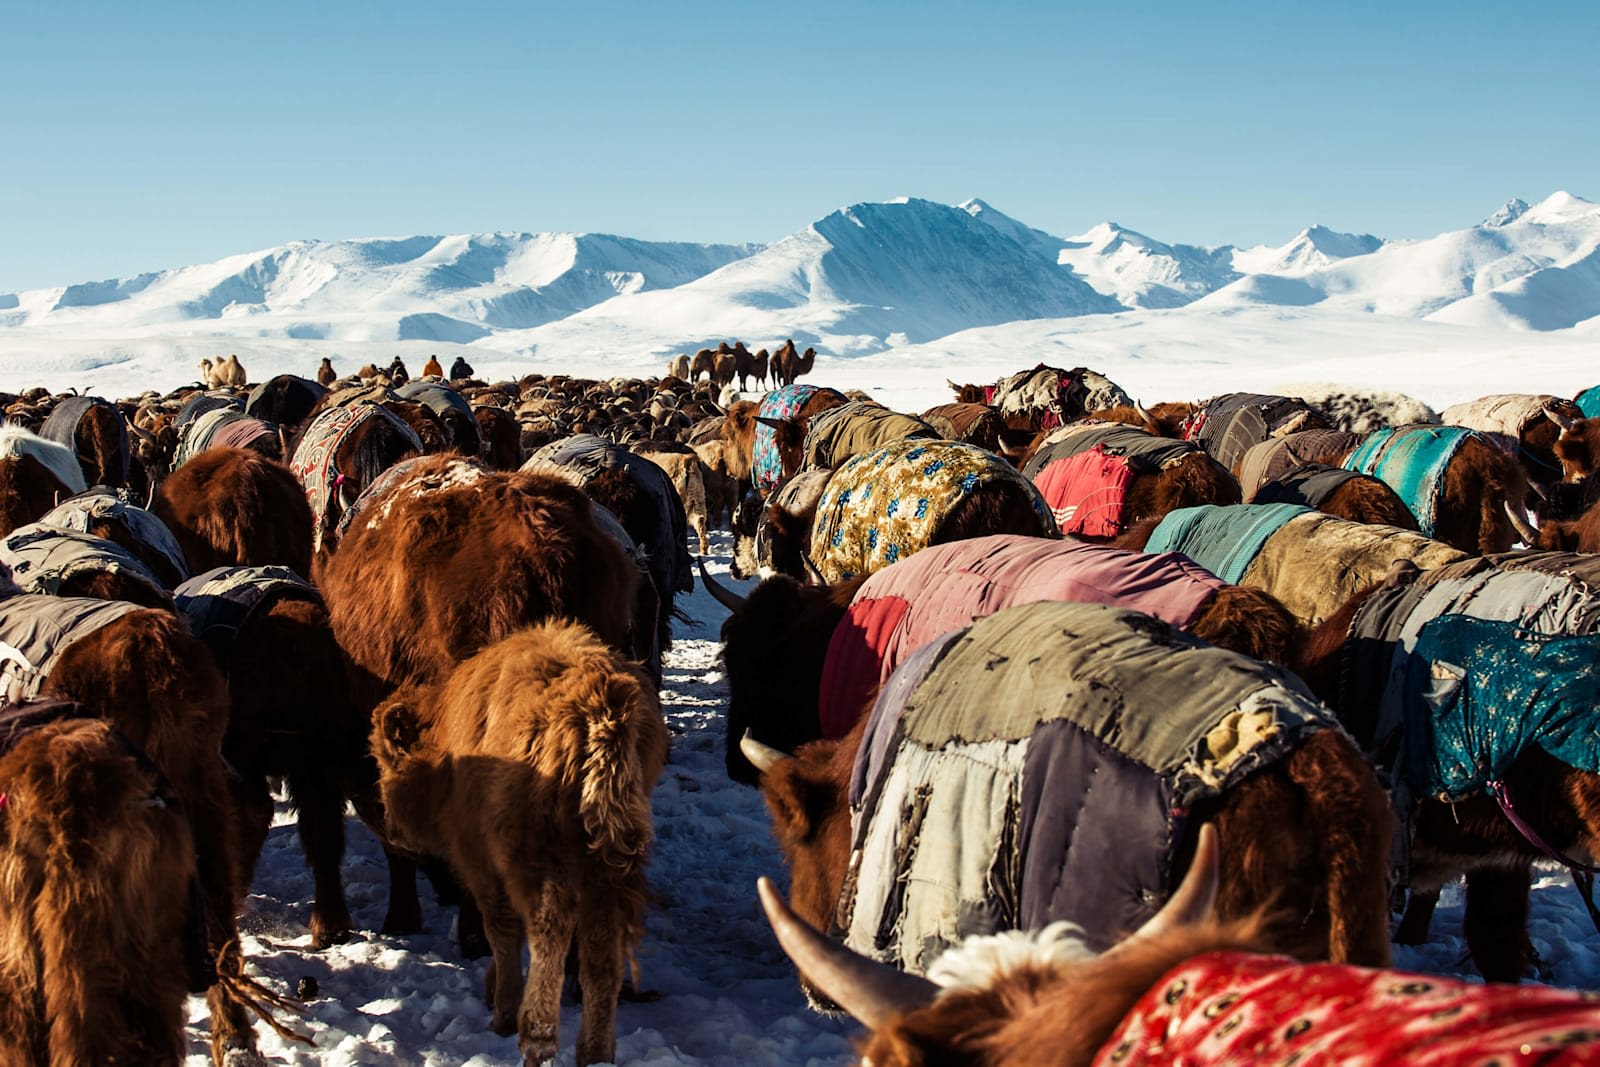 A herd of moose in the snowy mountain region of Mongolia